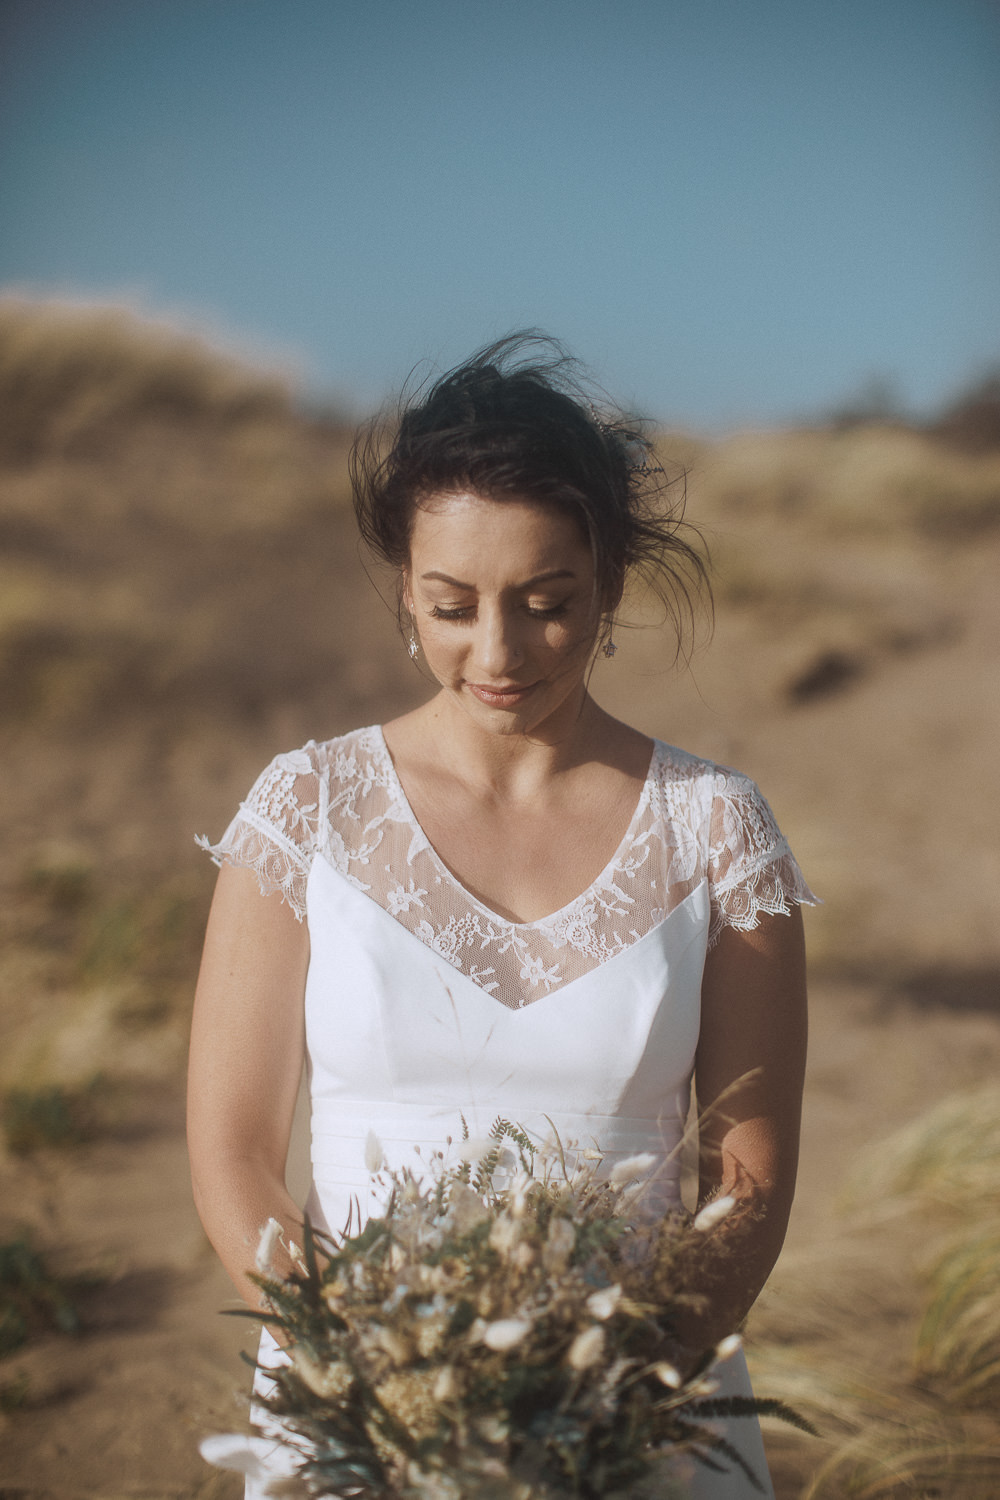 Bride looking at her dried flower bouquet